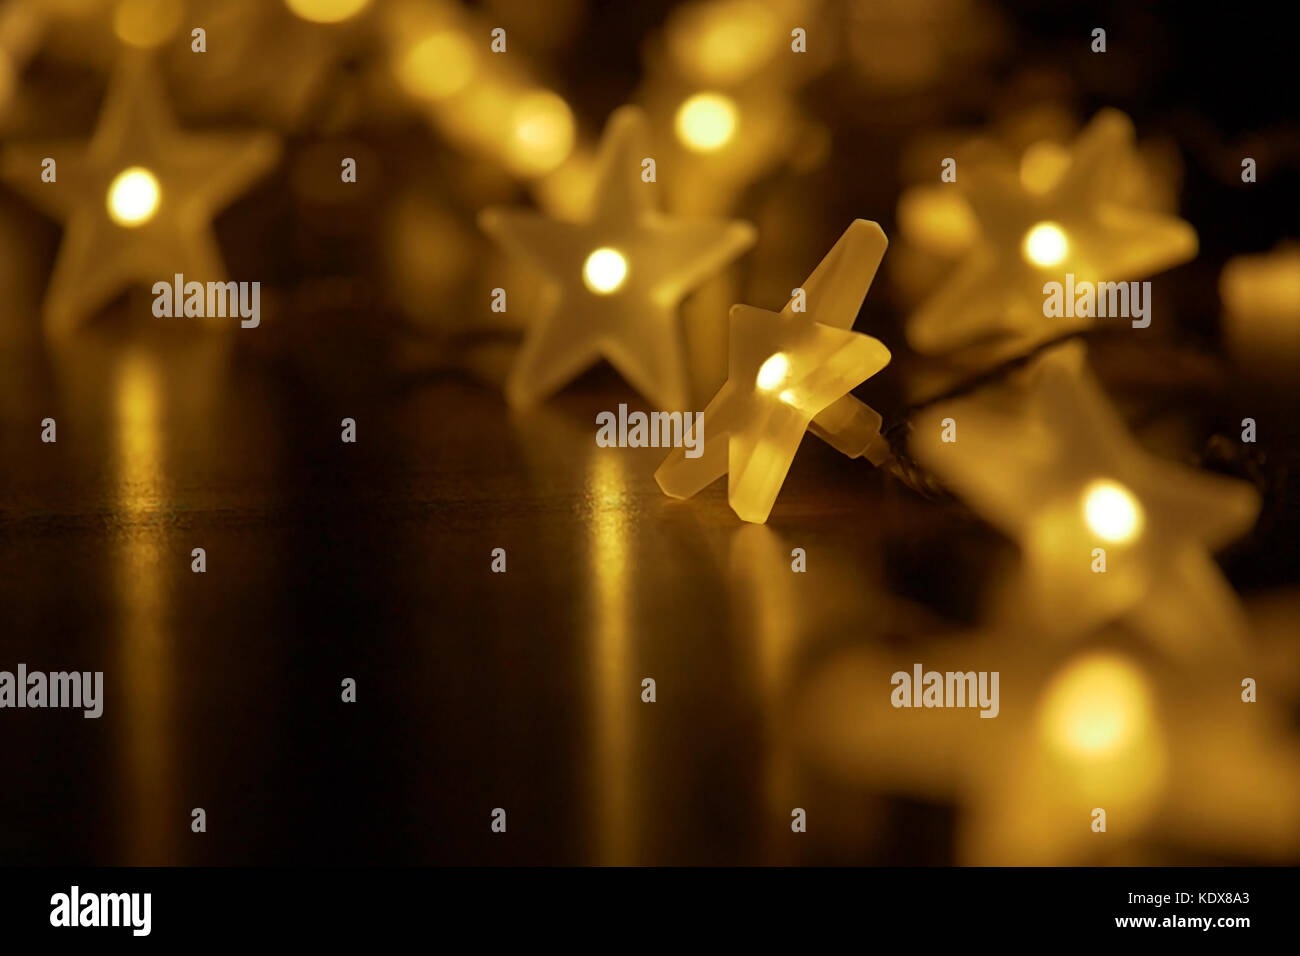 Illuminated chain of starry lights in festive atmosphere; low depth of field on dark background with copy-space - Stock Image